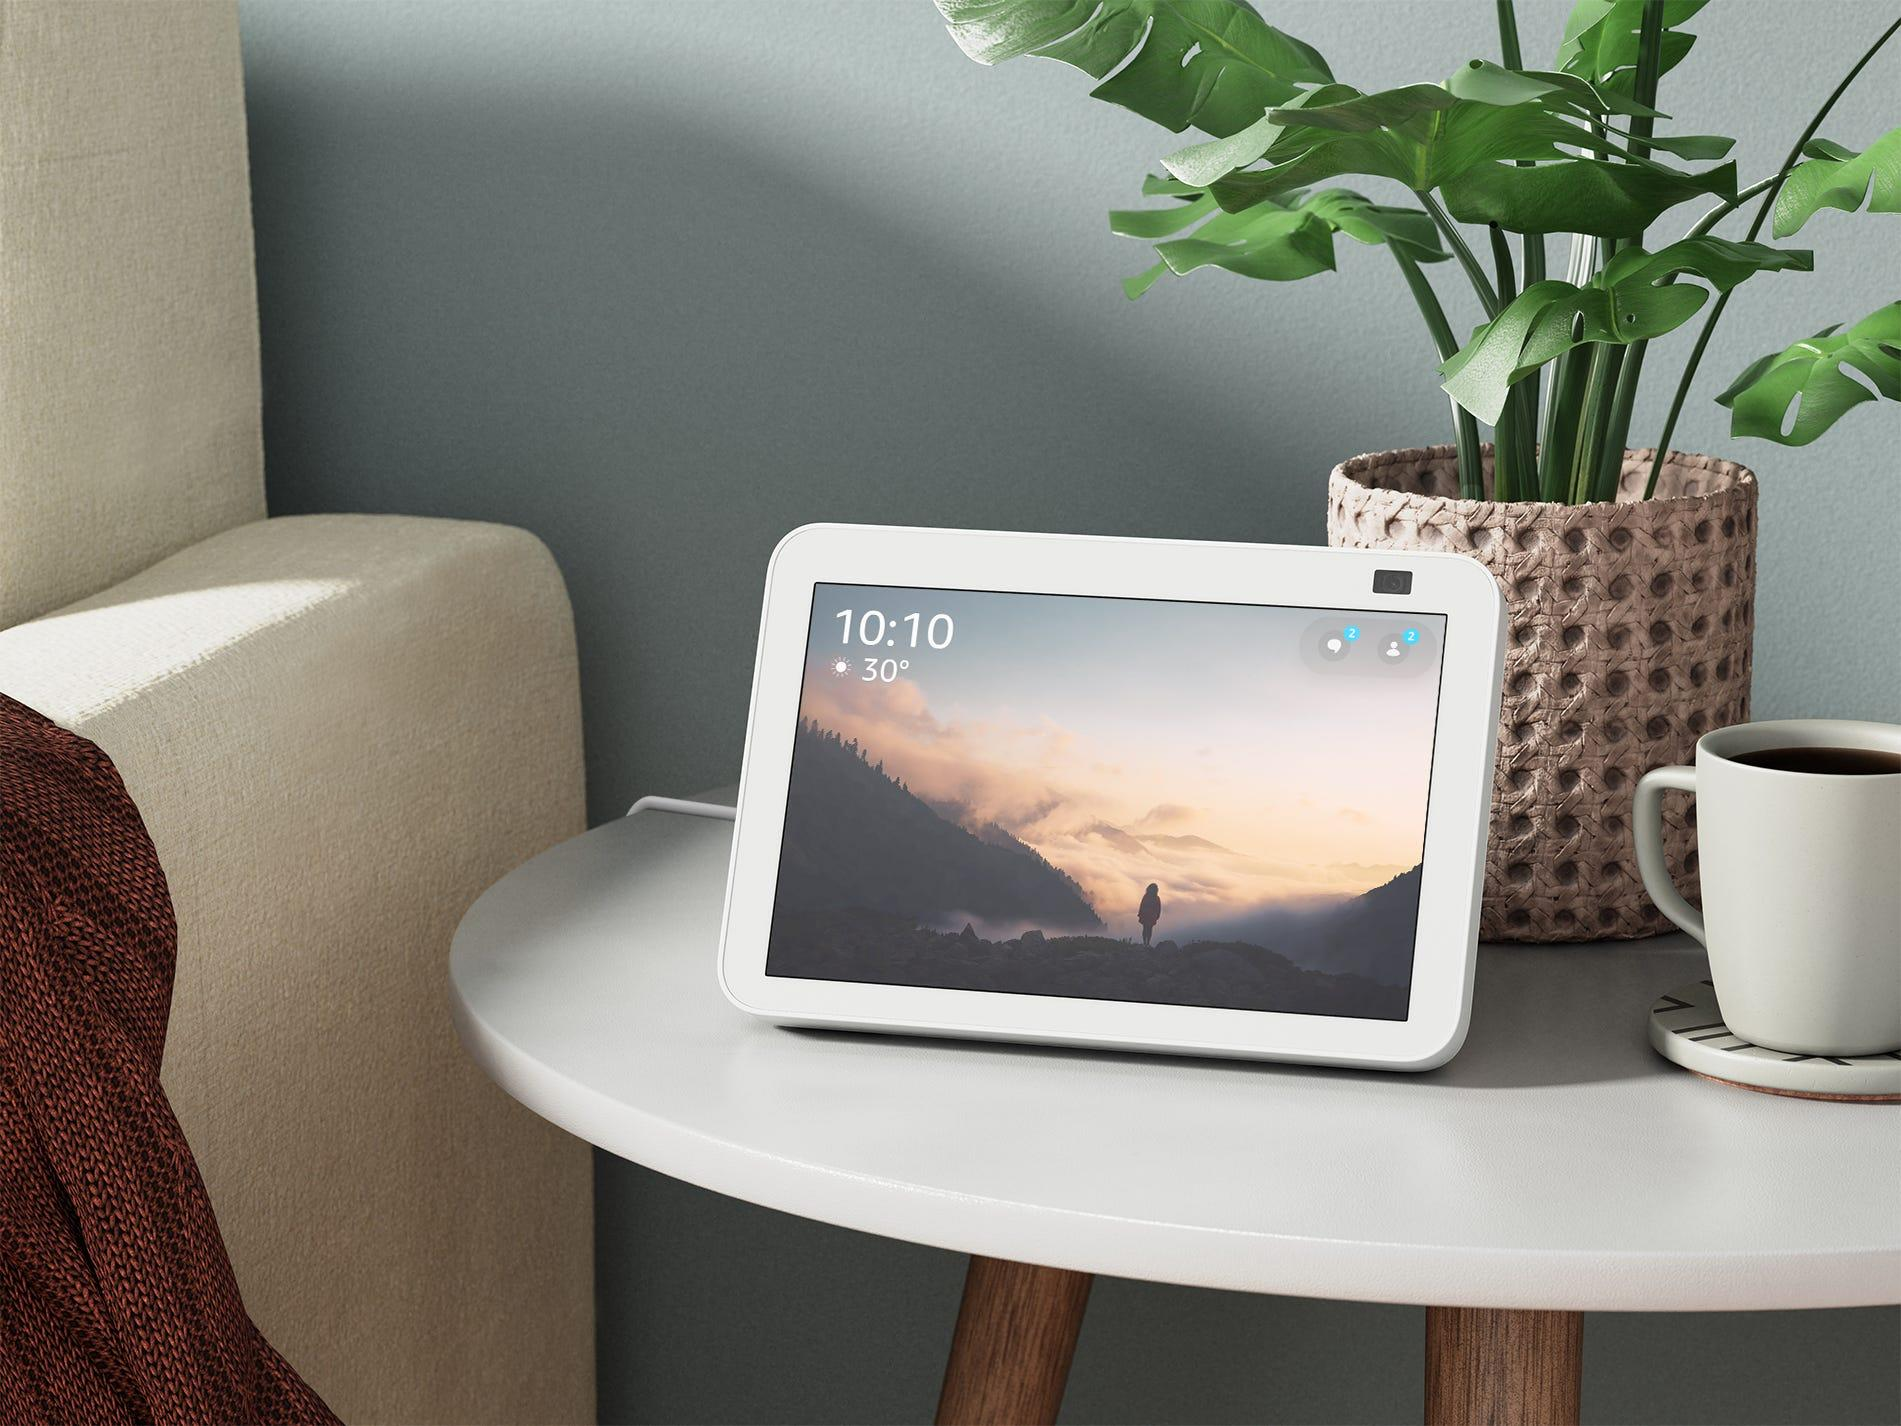 Amazon rolls out new Echo Show smart video displays, including version for kids